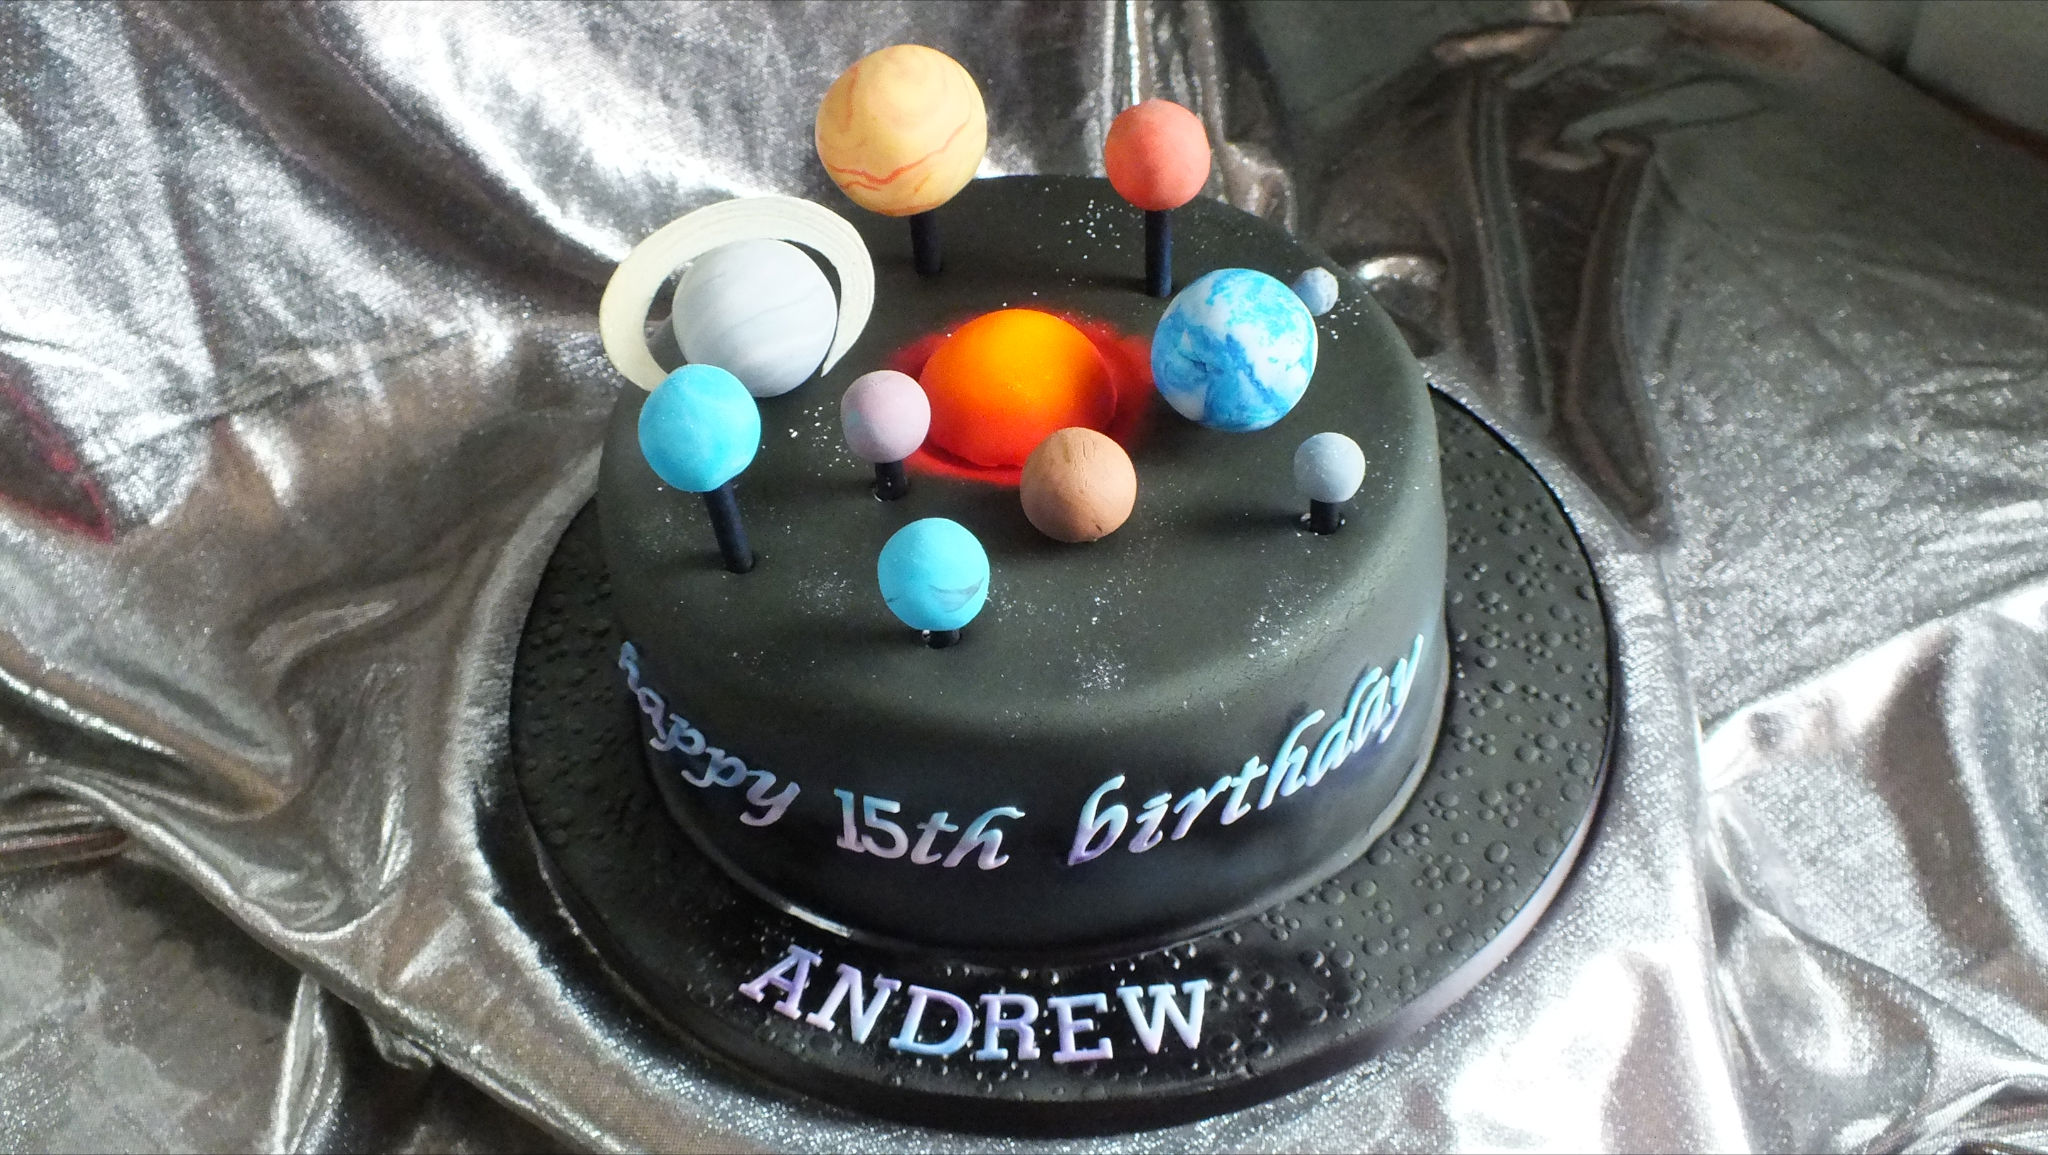 Cake Decorating Ideas Solar System : Solar System Themed Cakes (page 4) - Pics about space